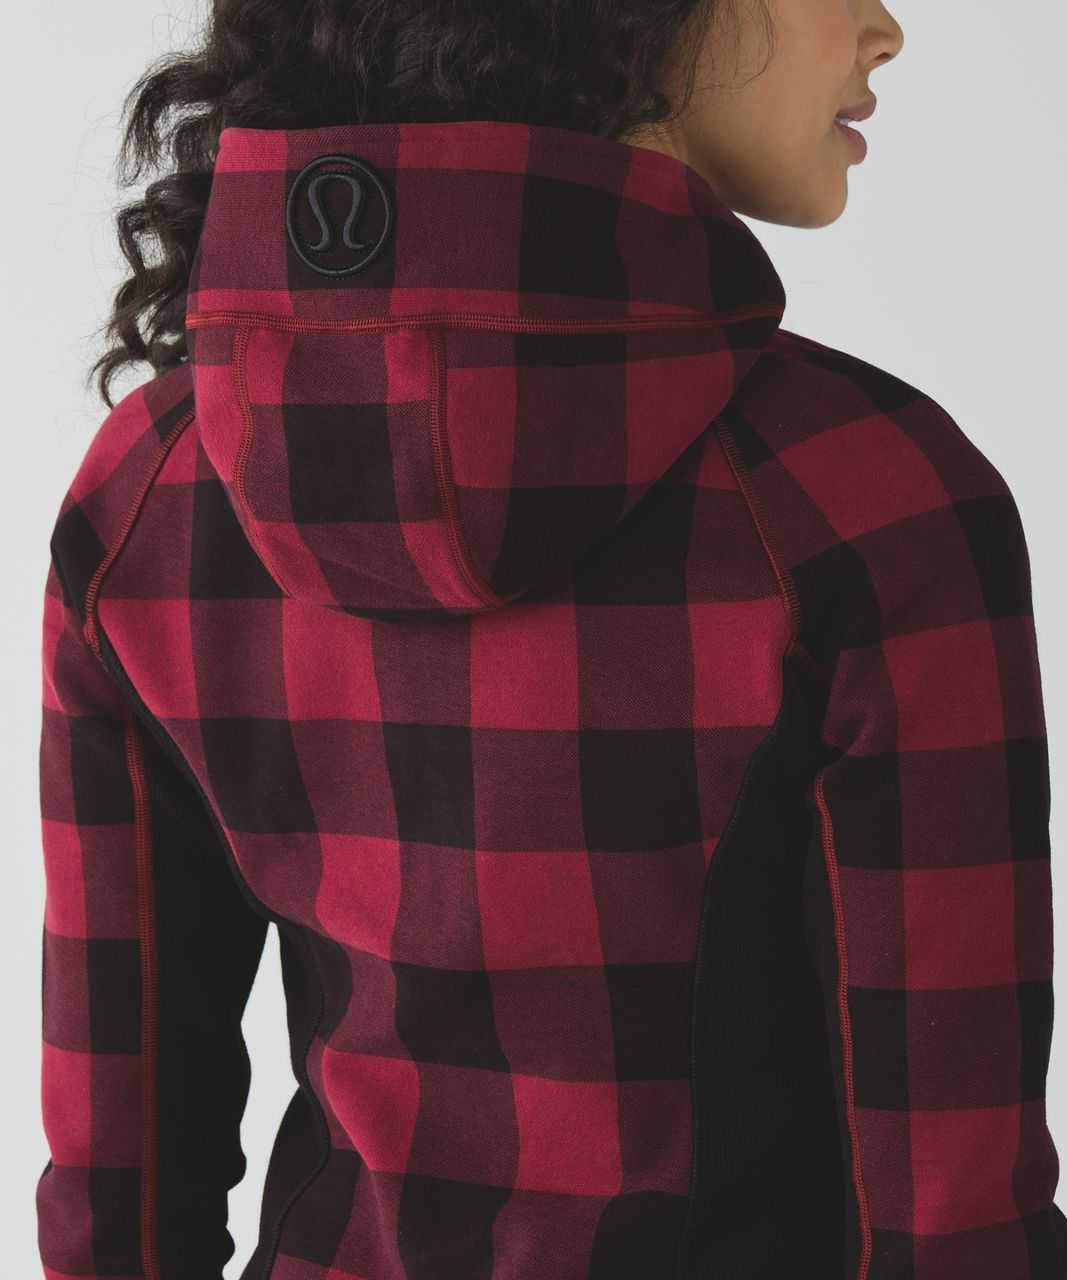 Lululemon Scuba Hoodie II - Mini Camp Check Printed Heathered Cranberry Black / Cranberry / Black